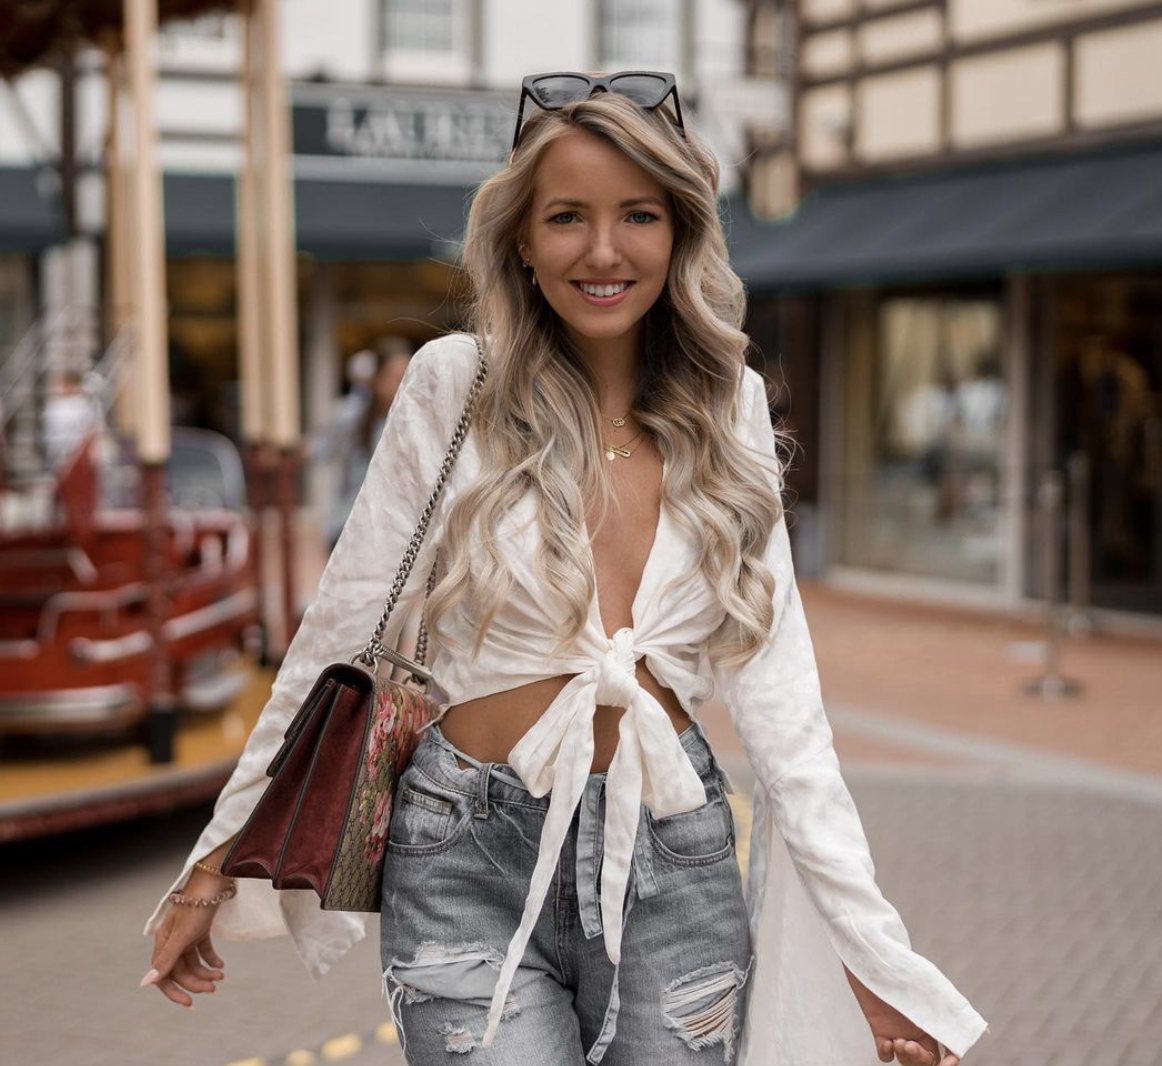 Lourene Gollatz | Fashion Blogge with Interest in Travel and Lifestyle